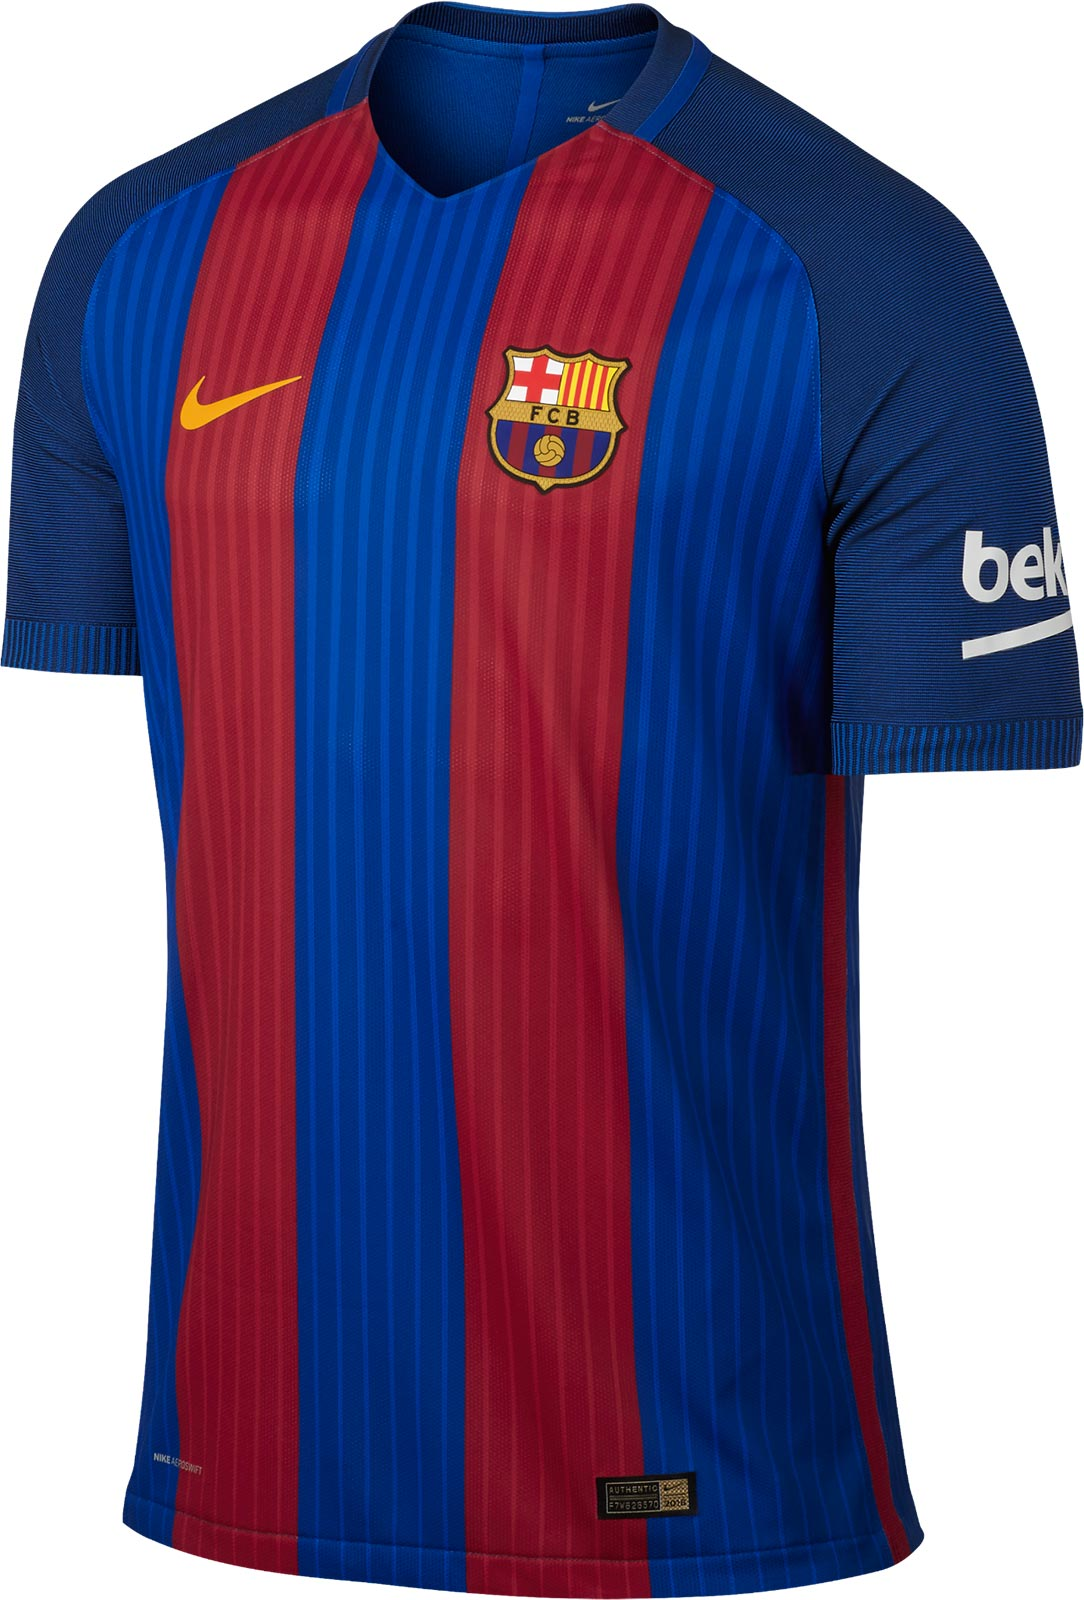 Barcelona 16 17 Home Kit Released Footy Headlines